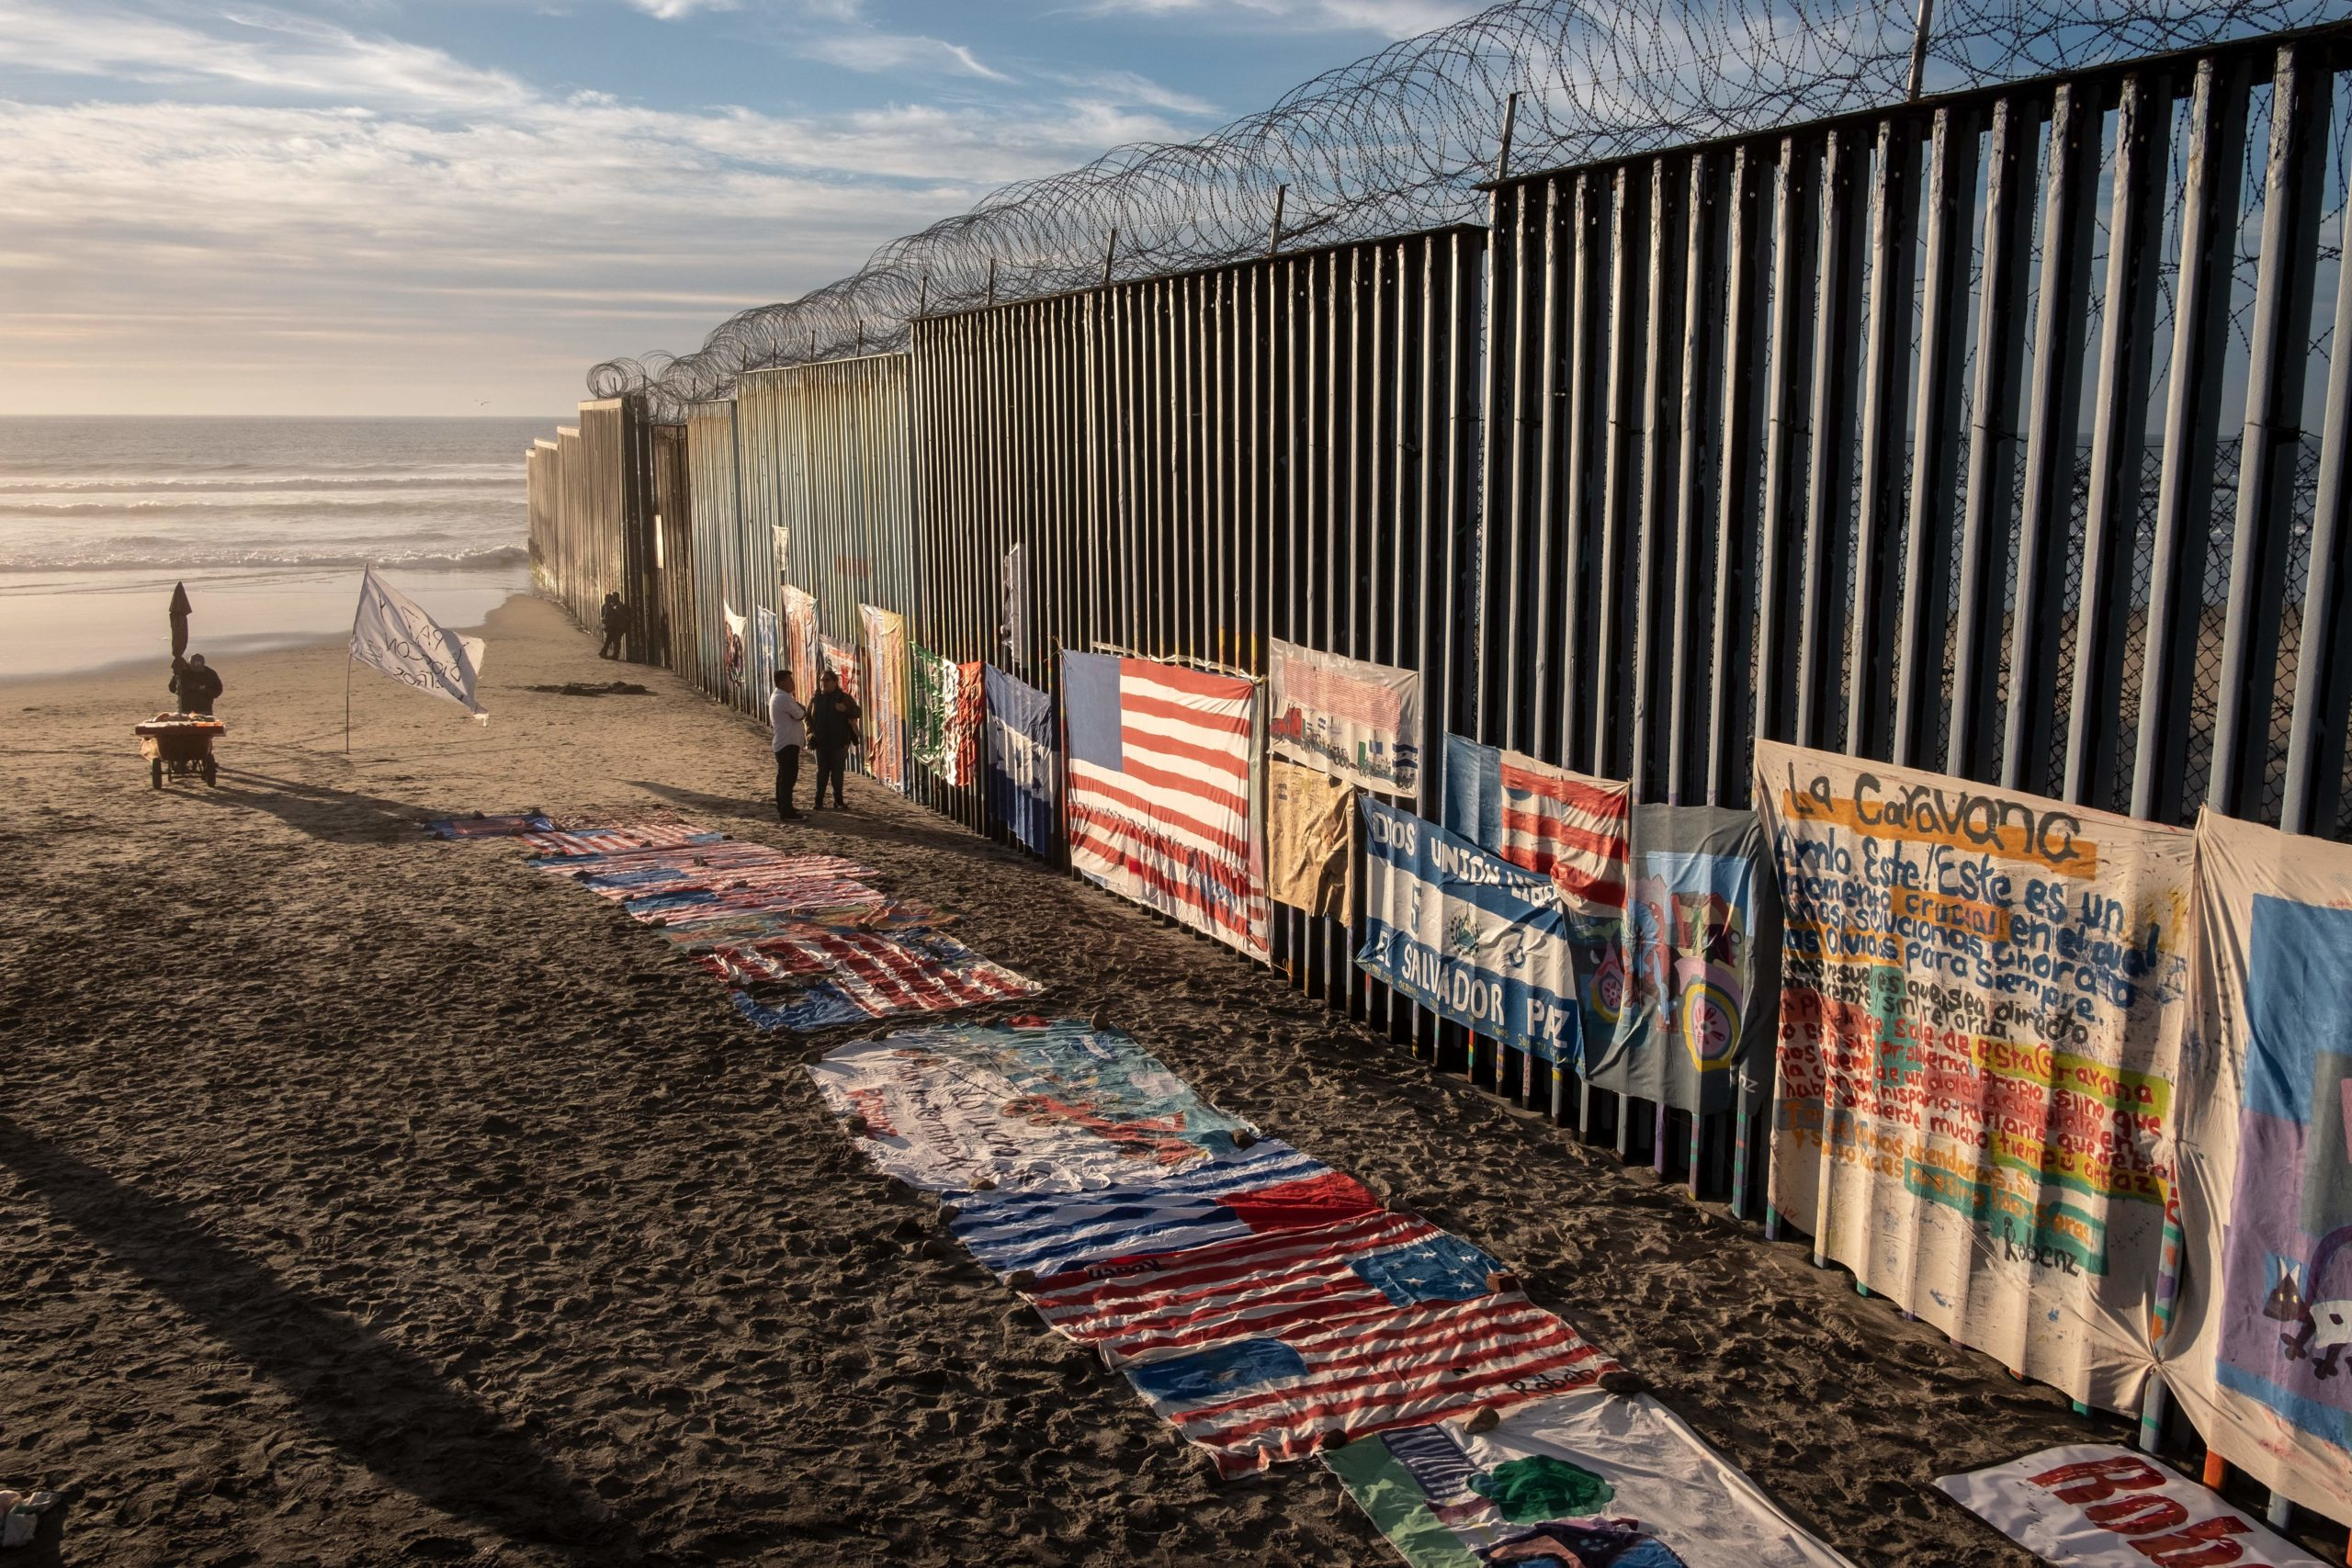 A section of the US-Mexico border fence is seen on Jan. 8, 2019. (Guillermo Arias/AFP via Getty Images)